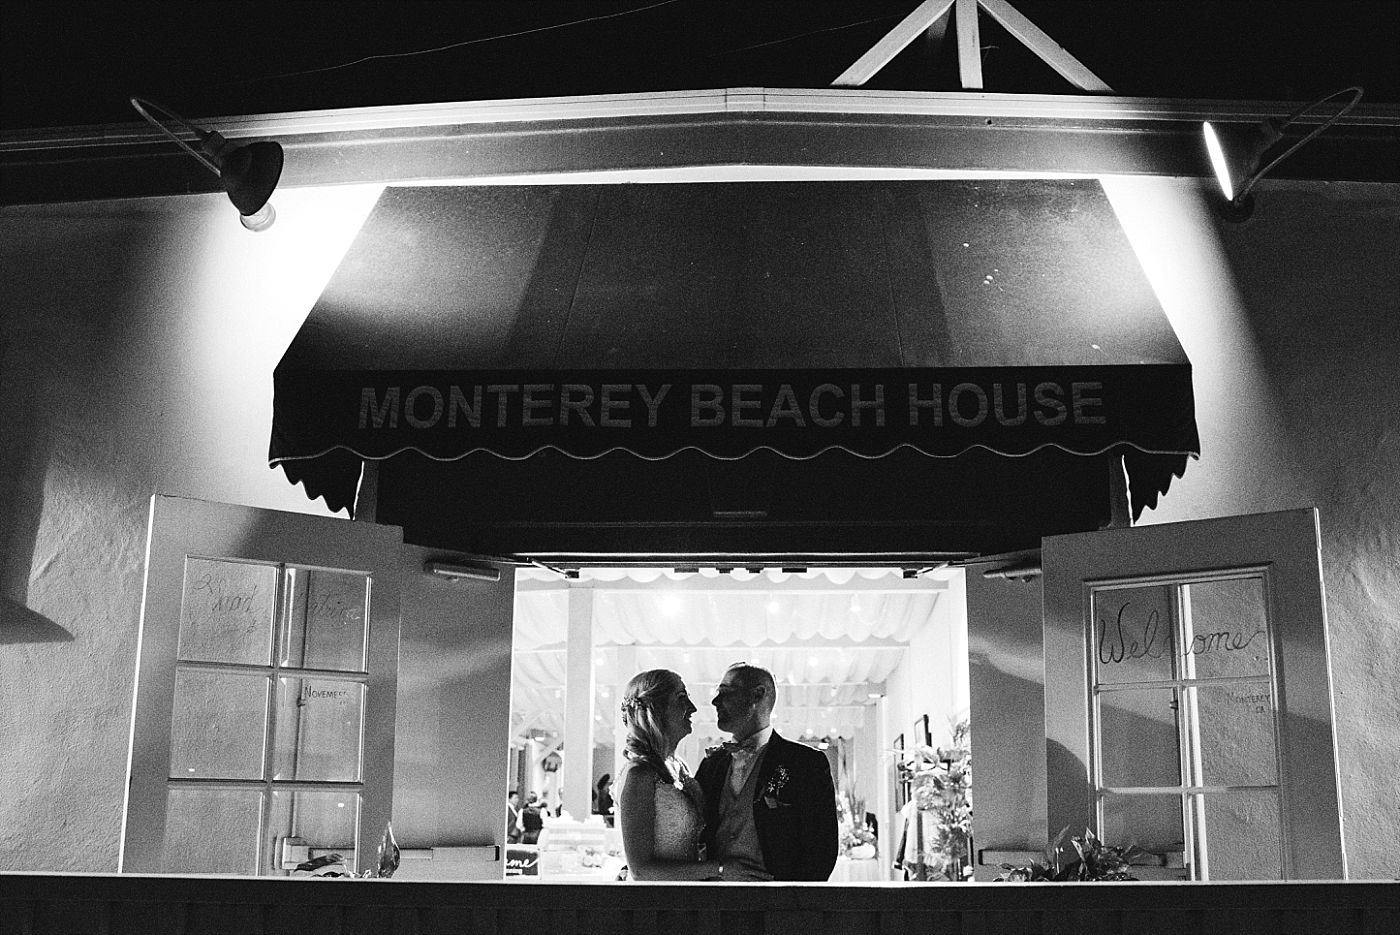 monterey beach house California destination wedding reception